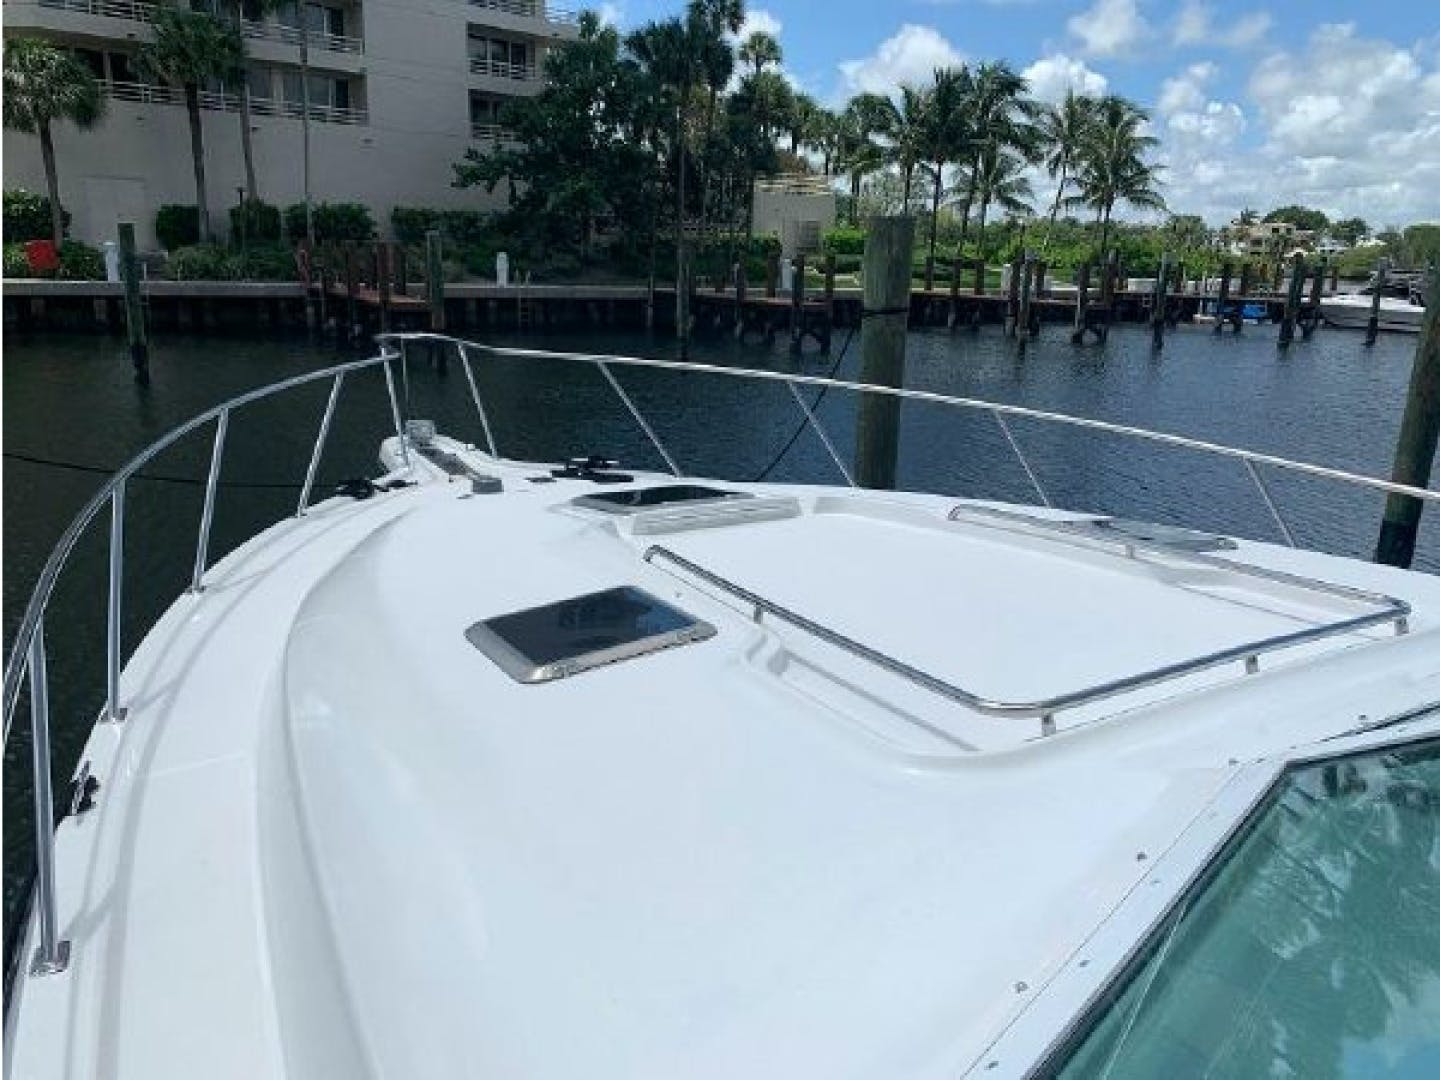 2001 Tiara Yachts 40' 4000 Express Cummins Engines  | Picture 3 of 70